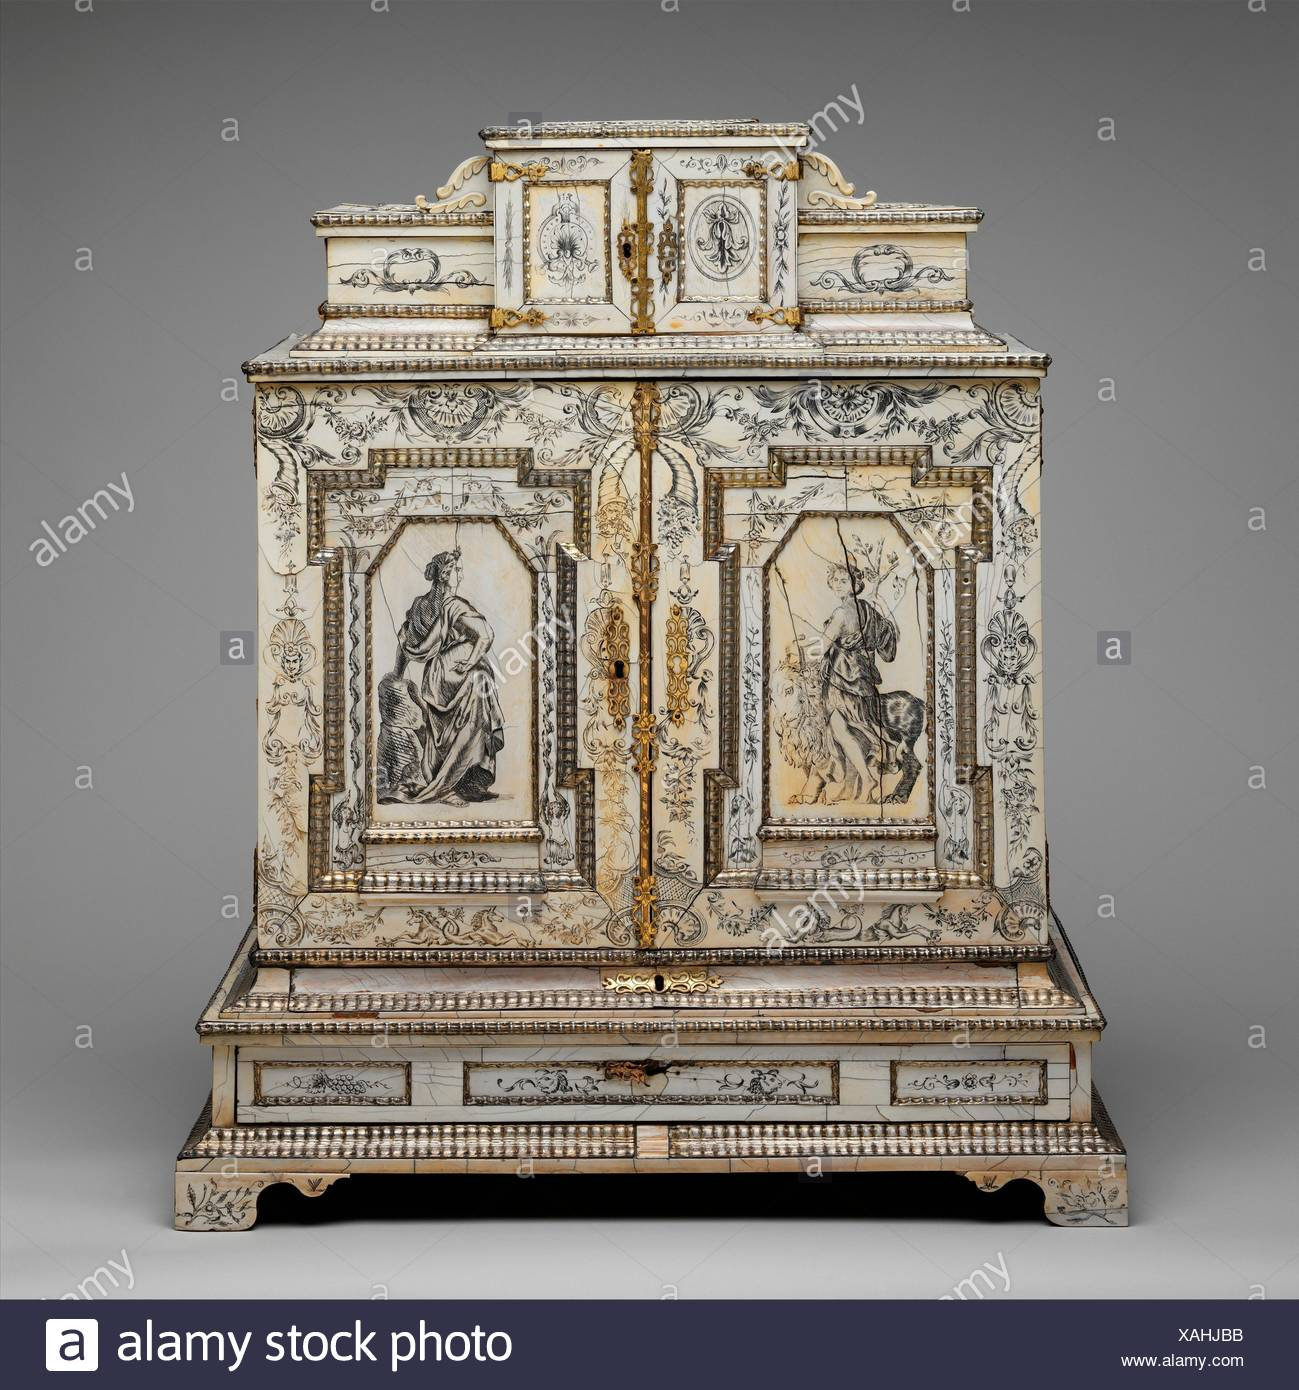 Cabinetry Stockfotos & Cabinetry Bilder - Alamy